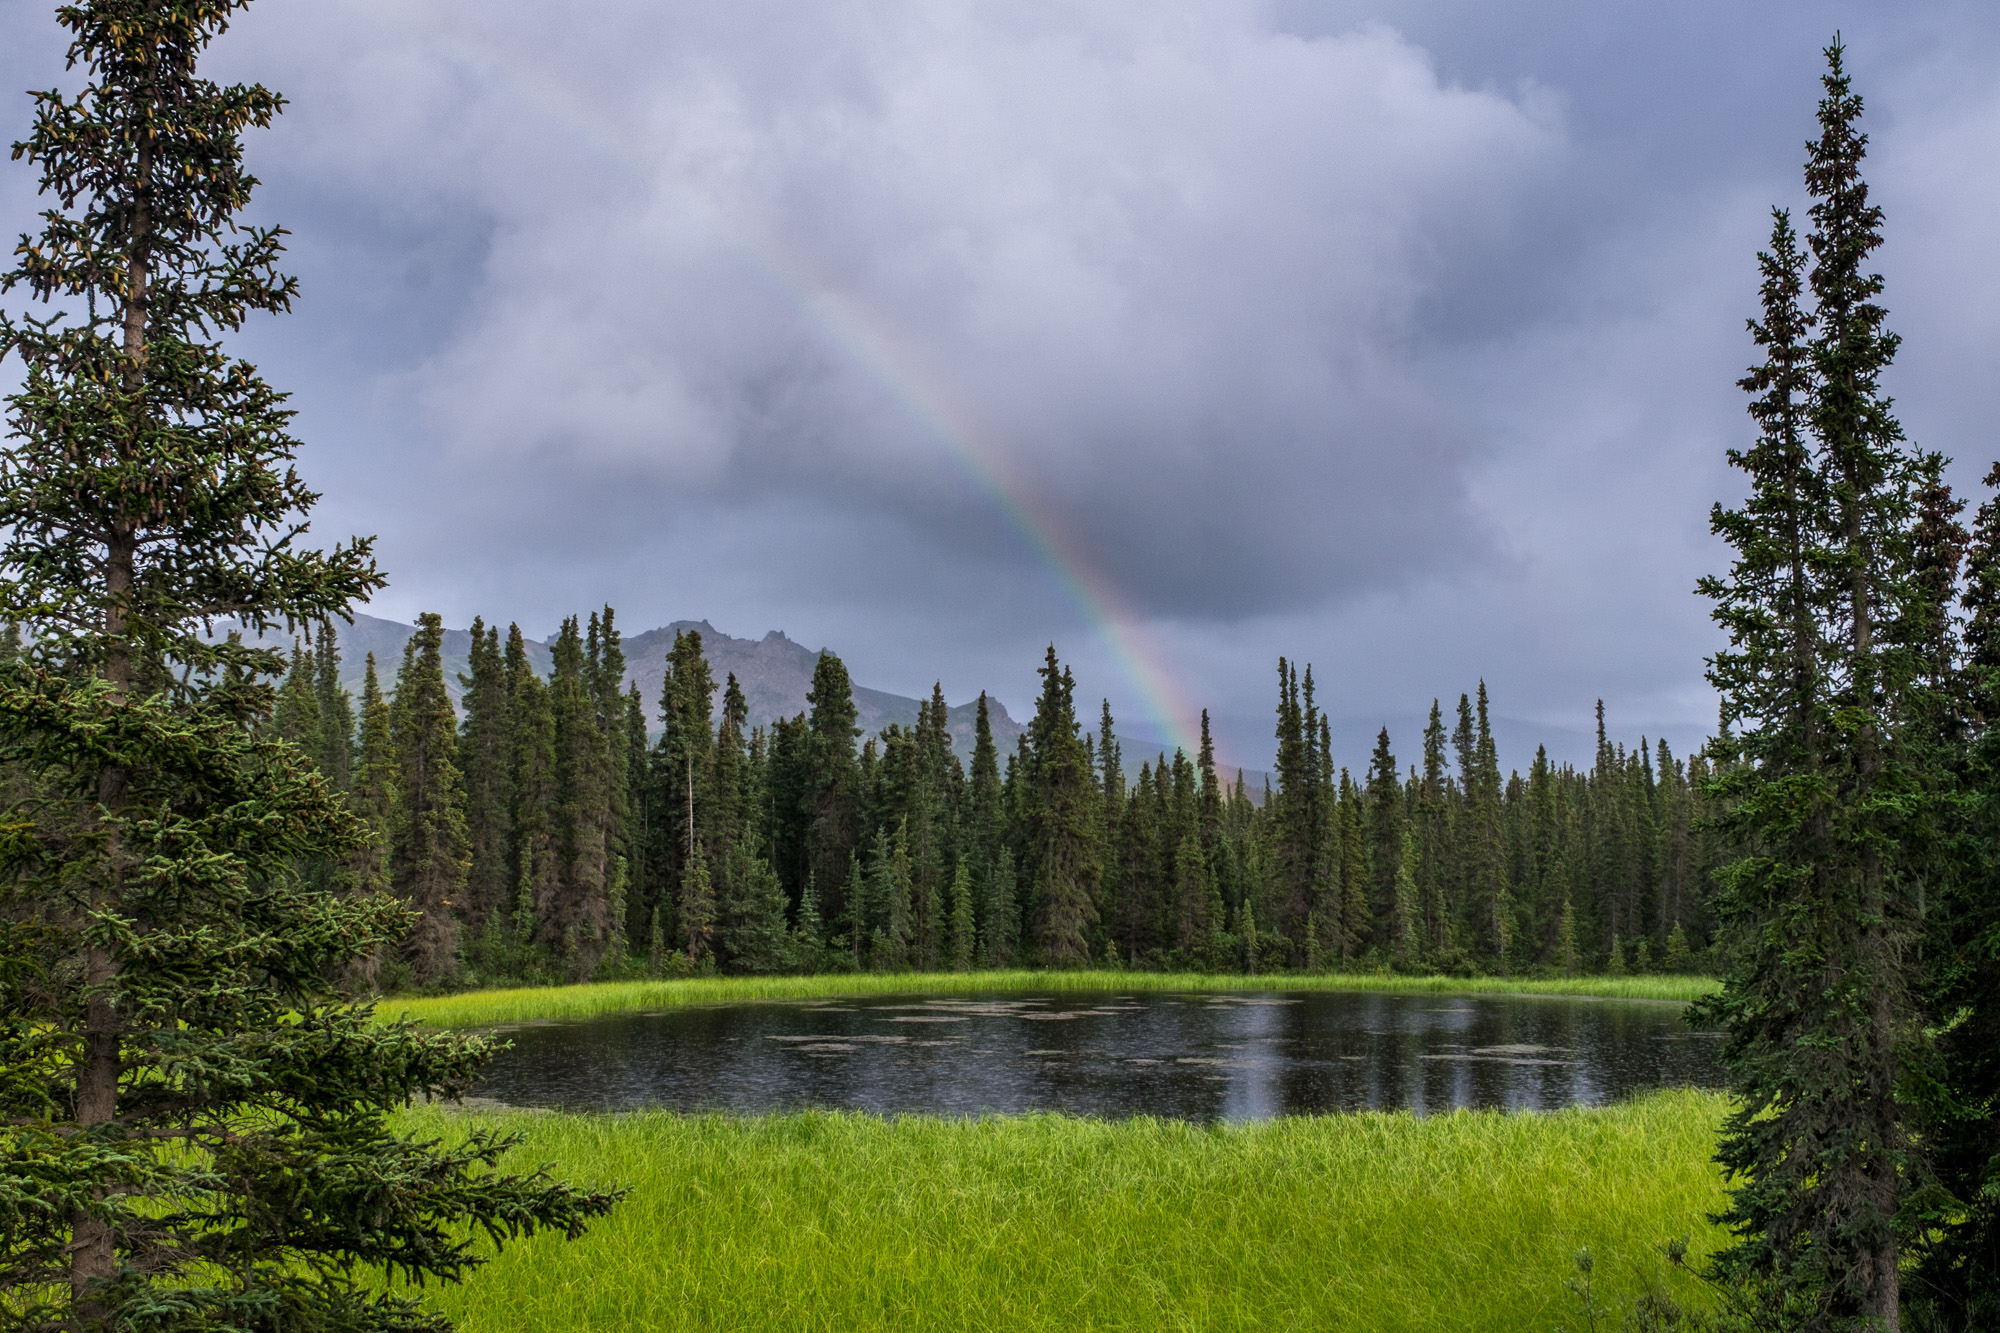 We had a lot of rain while in Denali, but those showers can sometimes bring rainbows.